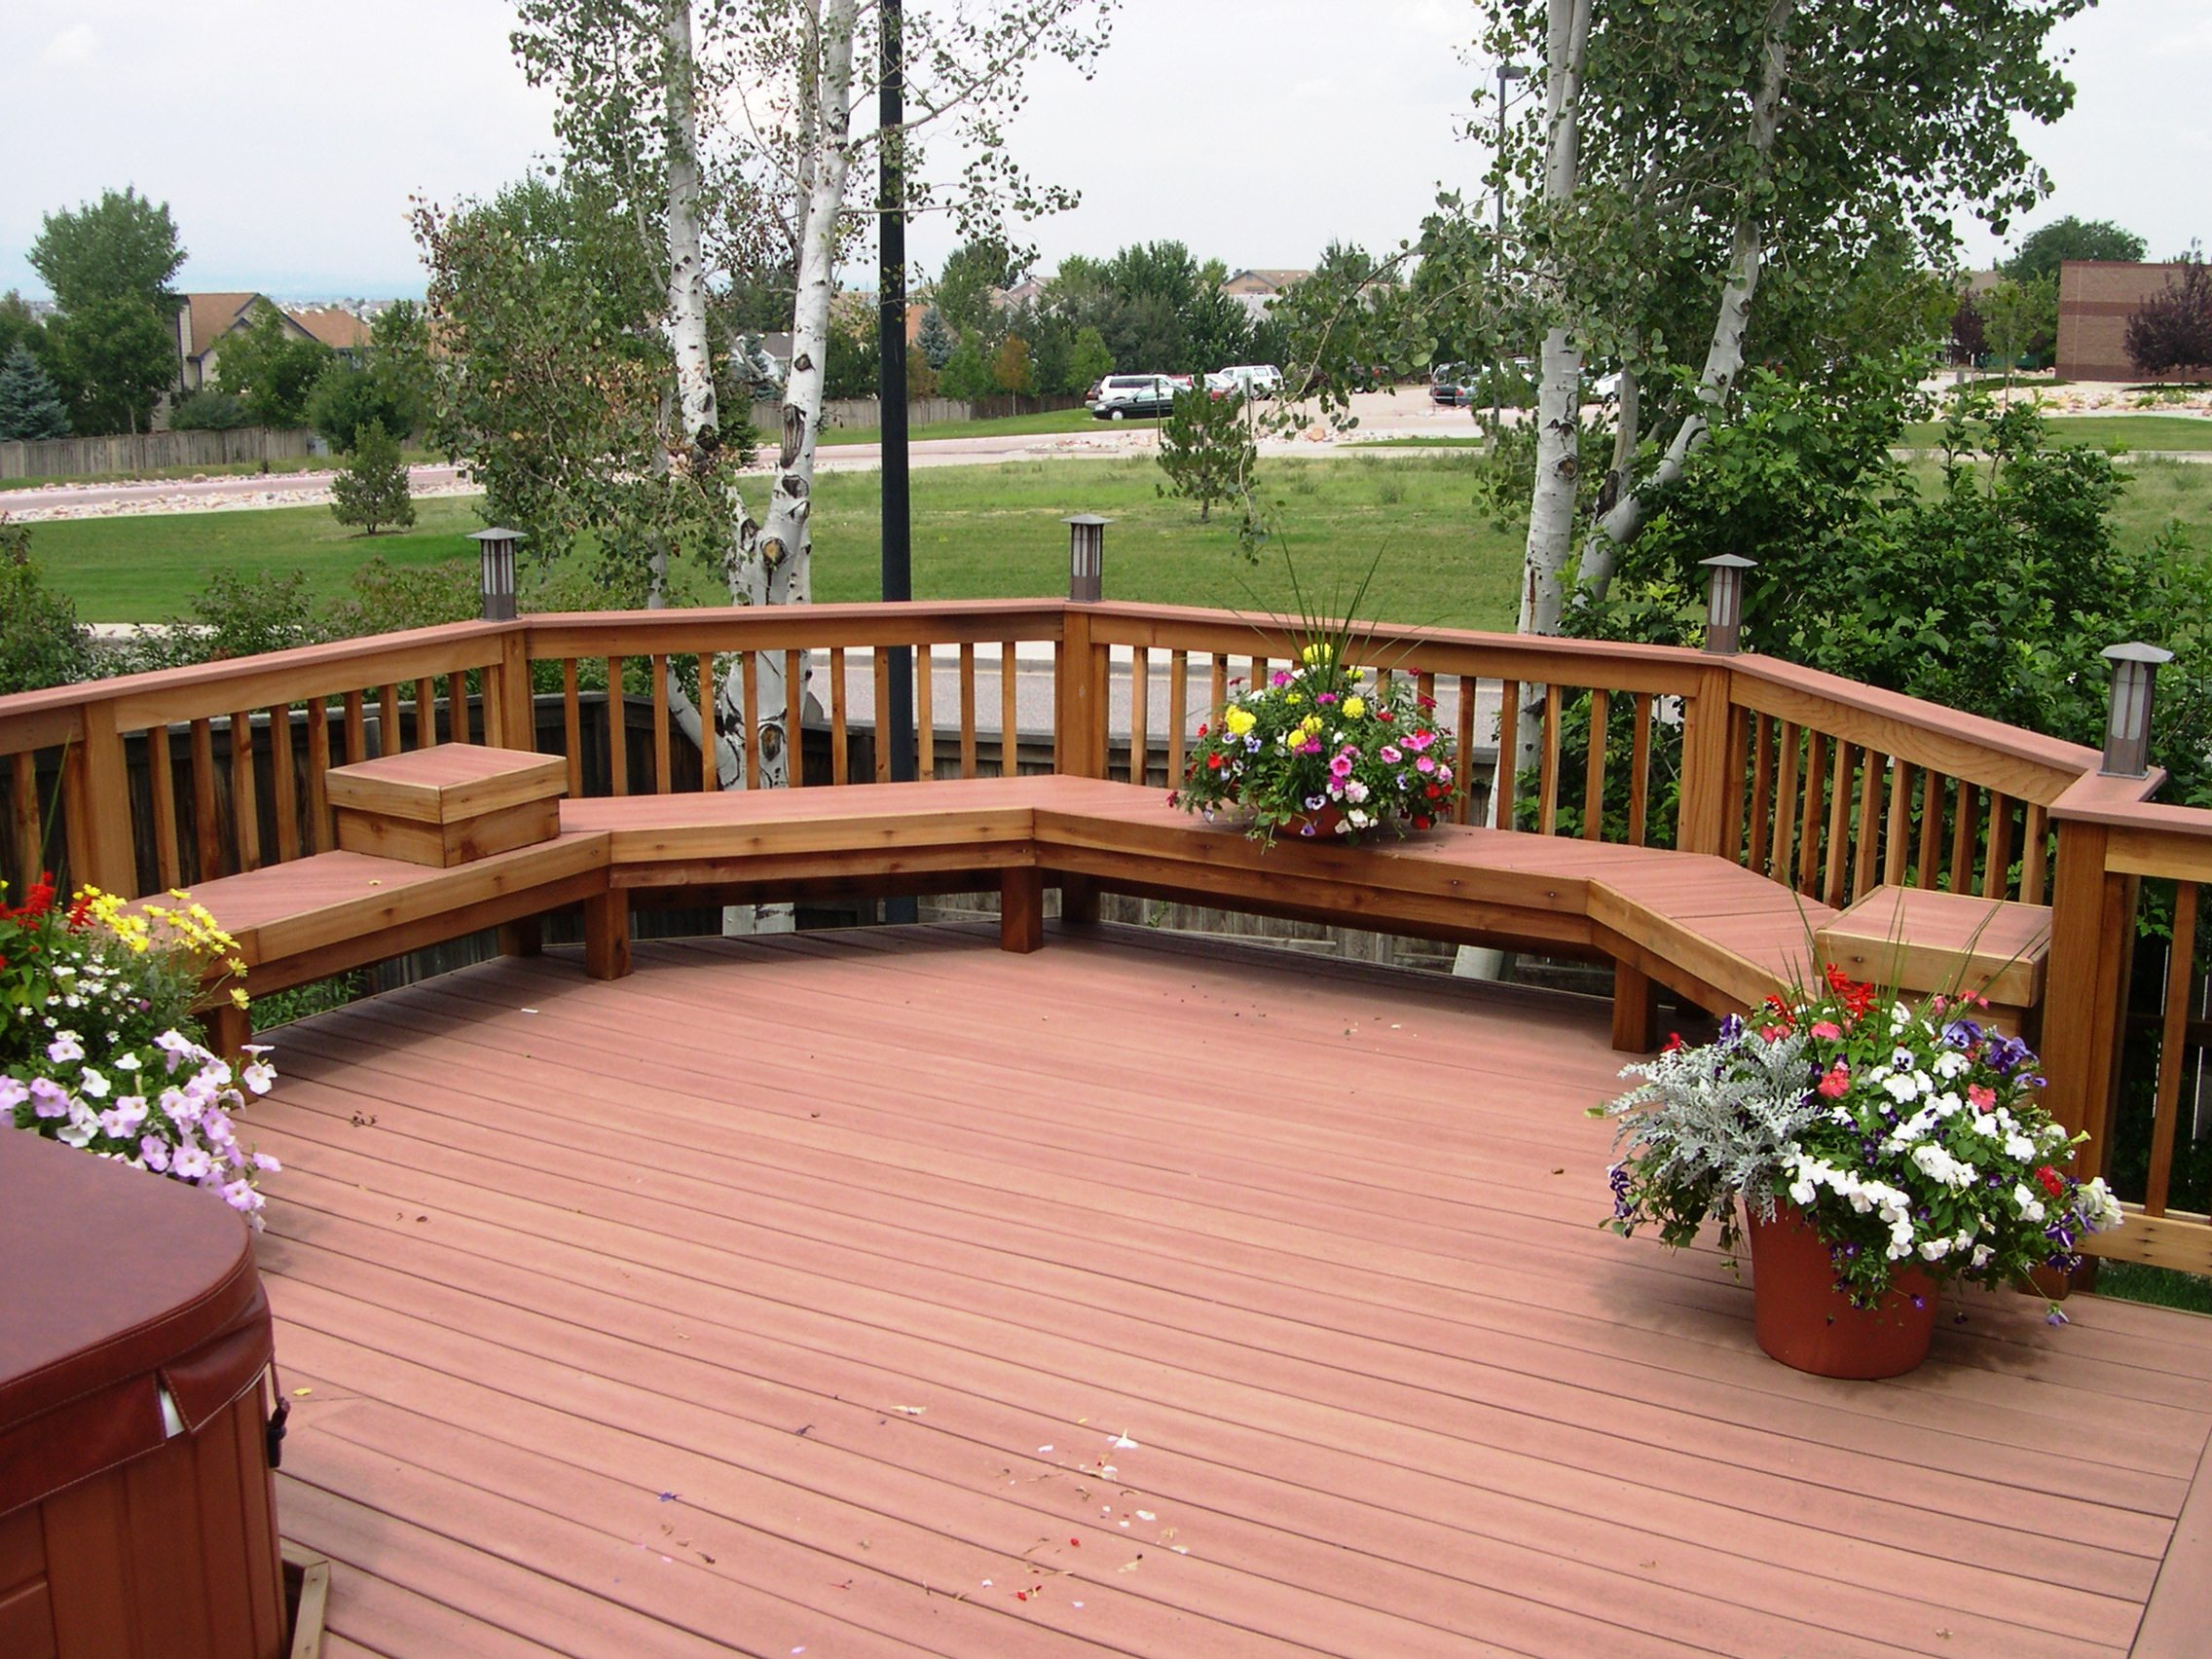 Awesome Home Deck Designs - HomesFeed on Patio With Deck Ideas id=91085